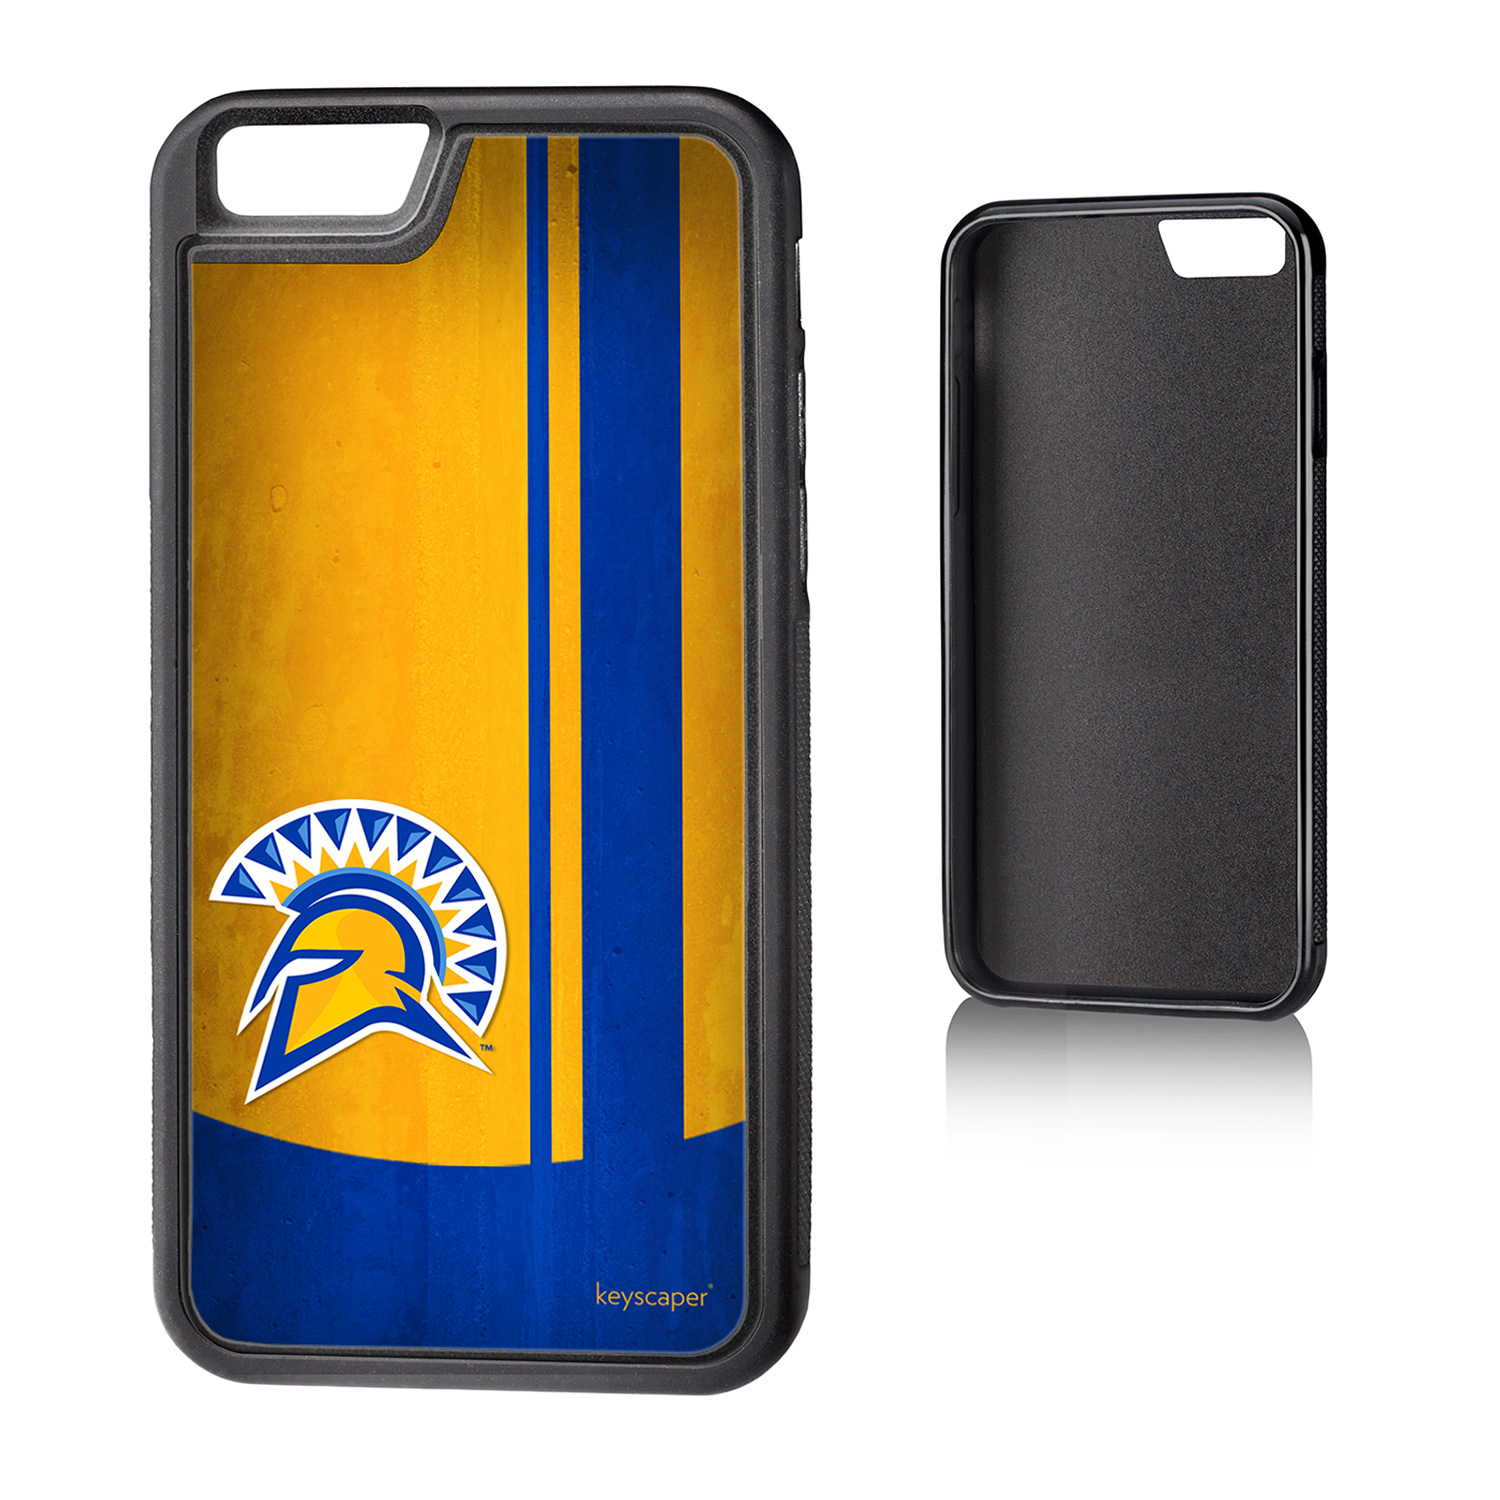 San Jose State University Apple iPhone 6 Bump Case by Keyscaper